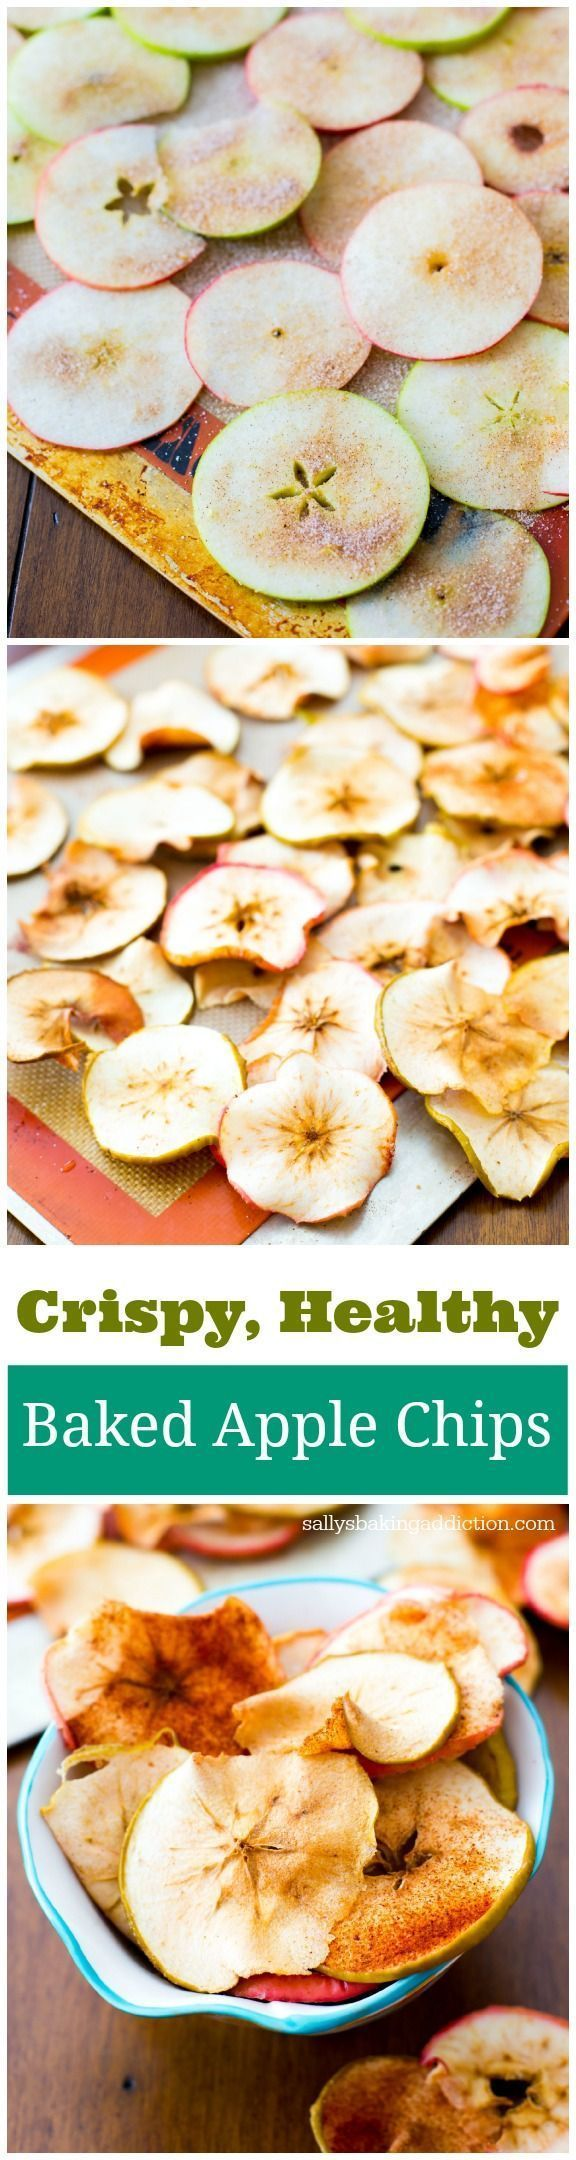 Crispy, crunchy baked cinnamon apple chips made at home. Healthy, cheap, easy, and addicting!